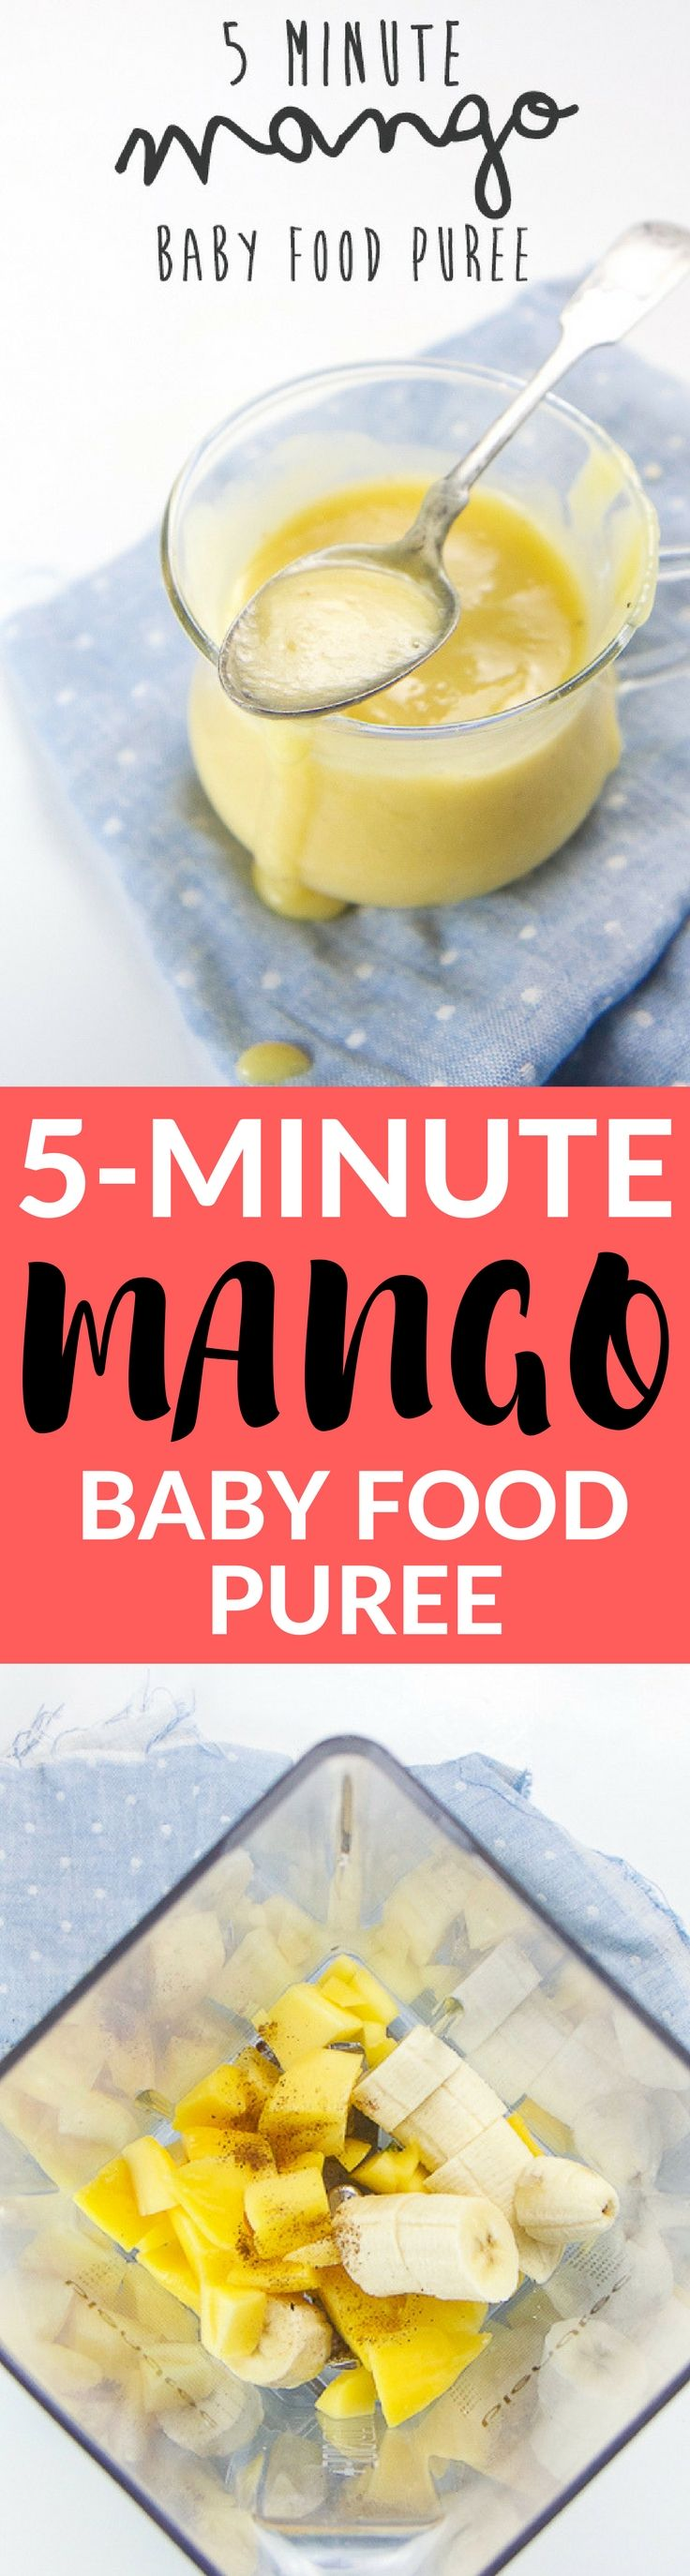 This 5-minute Mango Baby Food Puree is a great way to introduce baby to the magical taste of one of the worlds healthiest fruits - MANGOS! Bonus that it a no-cook, one-dish, easy-peasy puree for you to make!!